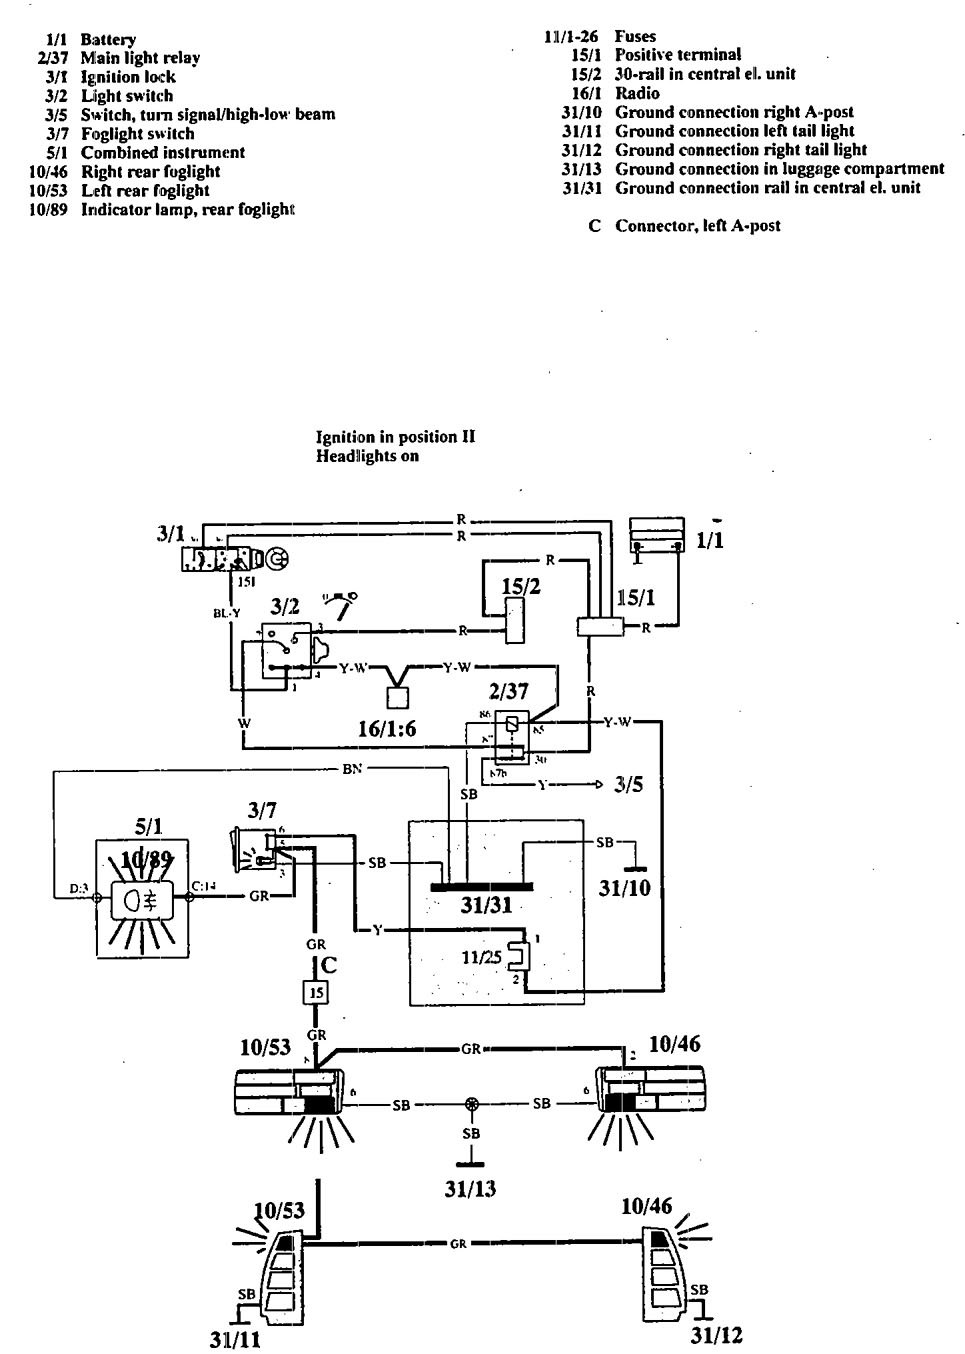 Volvo 940 (1992) - wiring diagrams - fog lamps - CARKNOWLEDGE on gmc tail light wiring diagram, chevrolet tail light wiring diagram, toyota tail light wiring diagram, jeep tail light wiring diagram, dodge tail light wiring diagram, vw tail light wiring diagram, ford f 150 tail light wiring diagram,